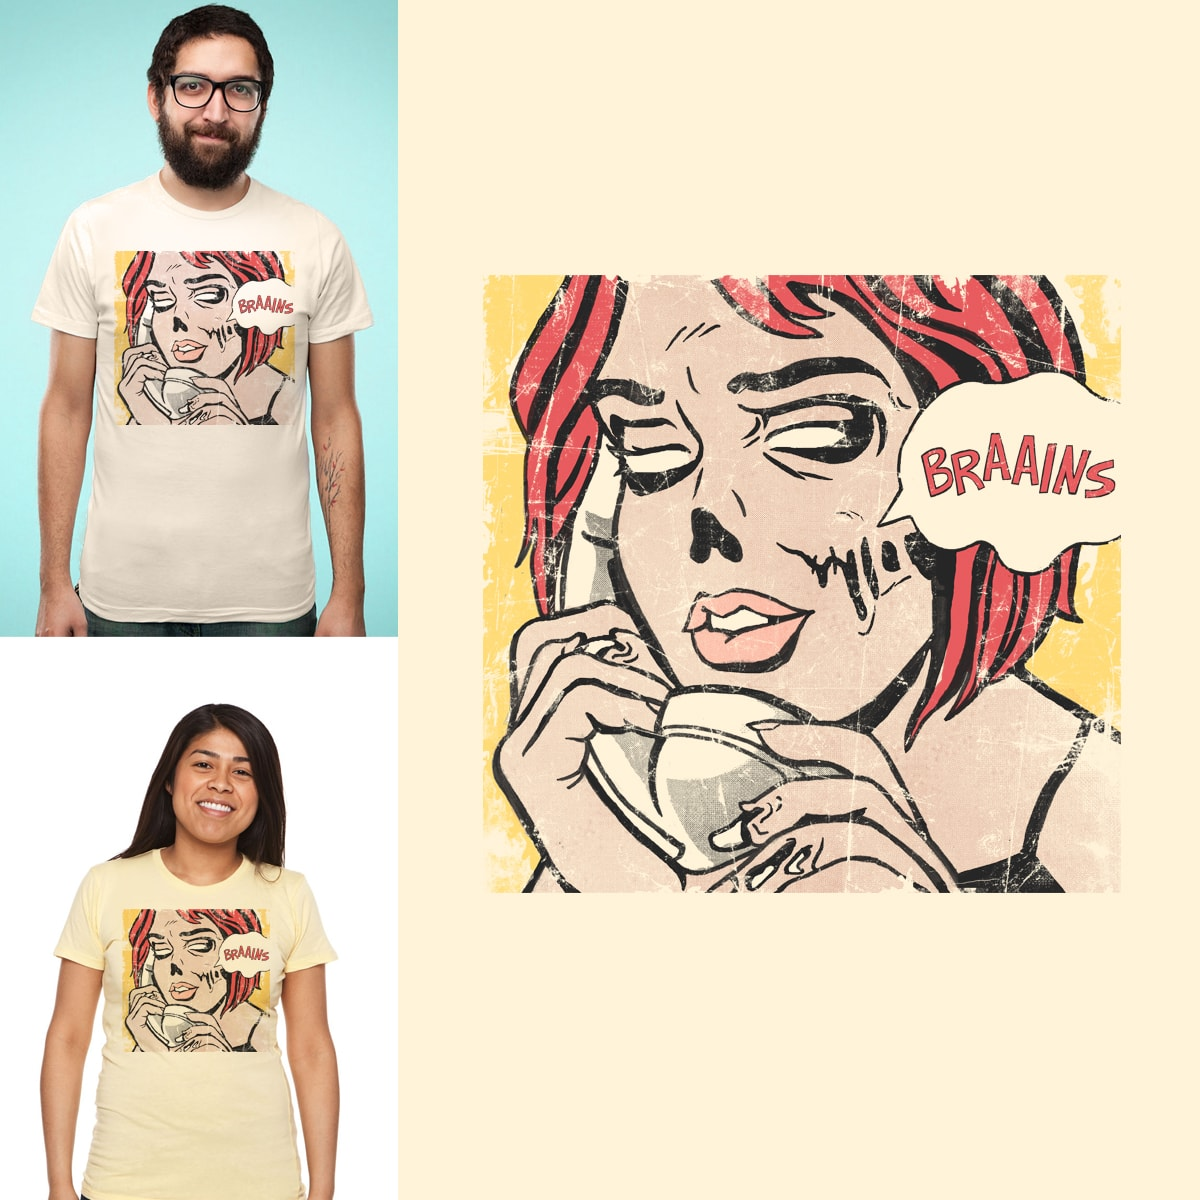 BRAAINS by GloopZ on Threadless